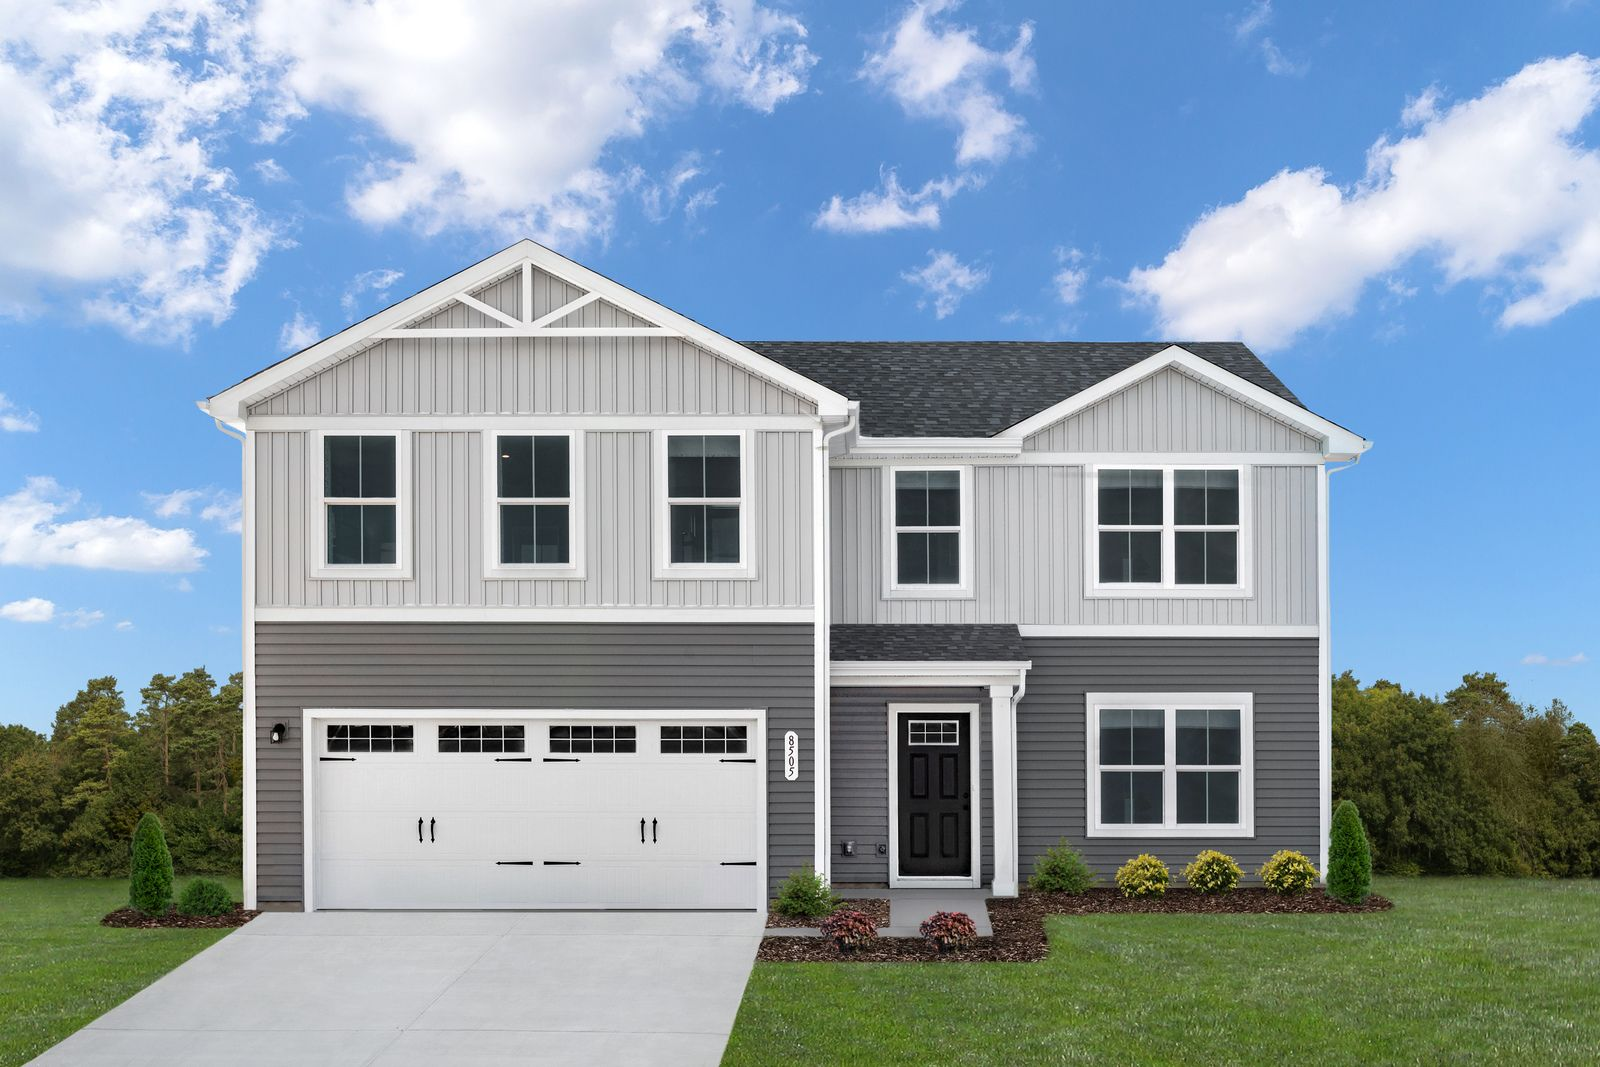 THORNTON GROVE - NOW OPEN:Stop renting - own an affordable new construction home only 8 miles from downtown Nashville!Schedule a visit today to start your journey!